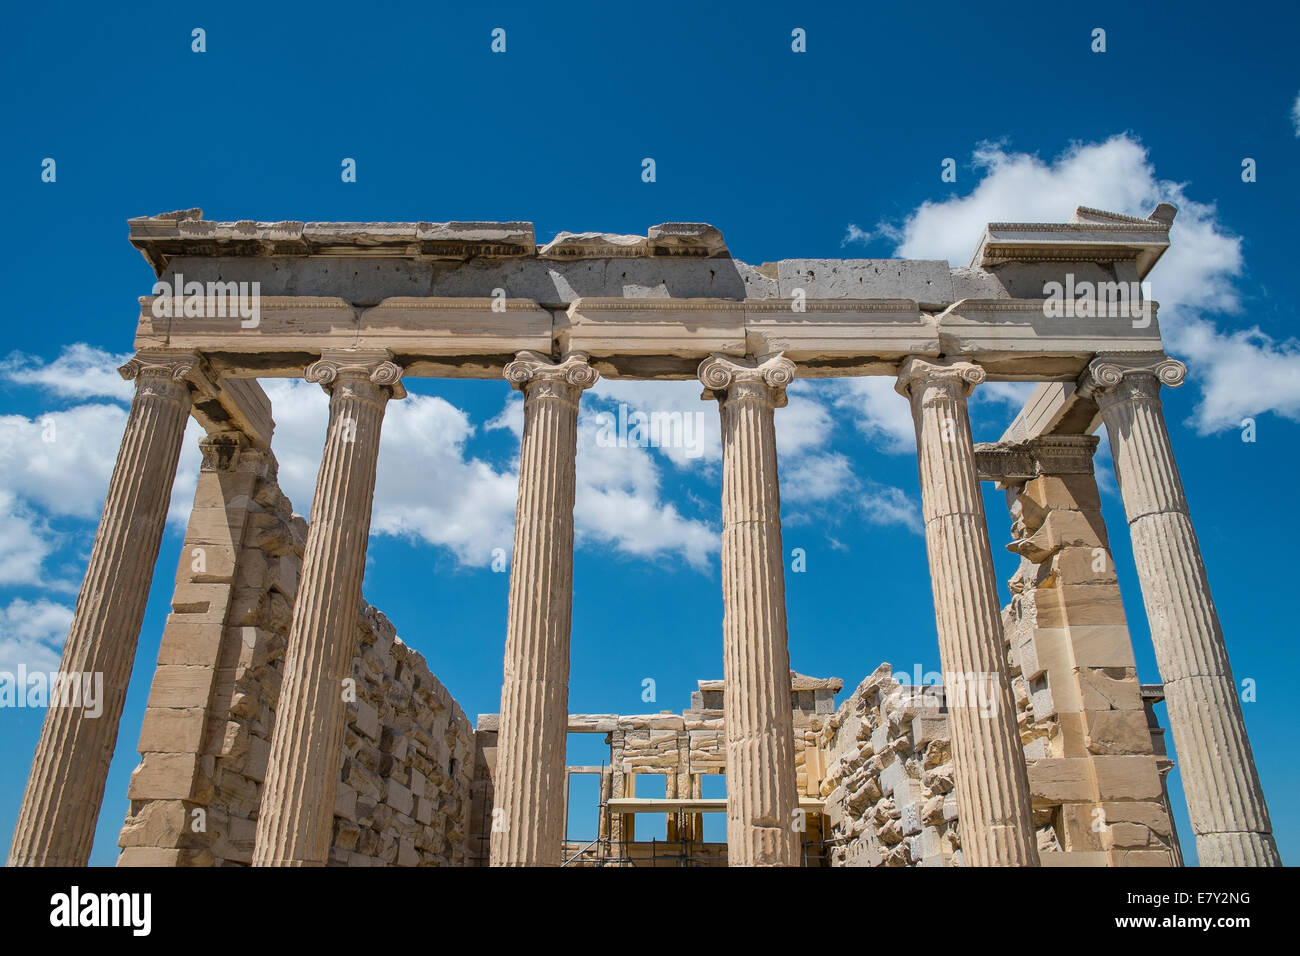 The Erechtheion or Erechtheum is an ancient Greek temple on the north side of the Acropolis of Athens in Greece - Stock Image